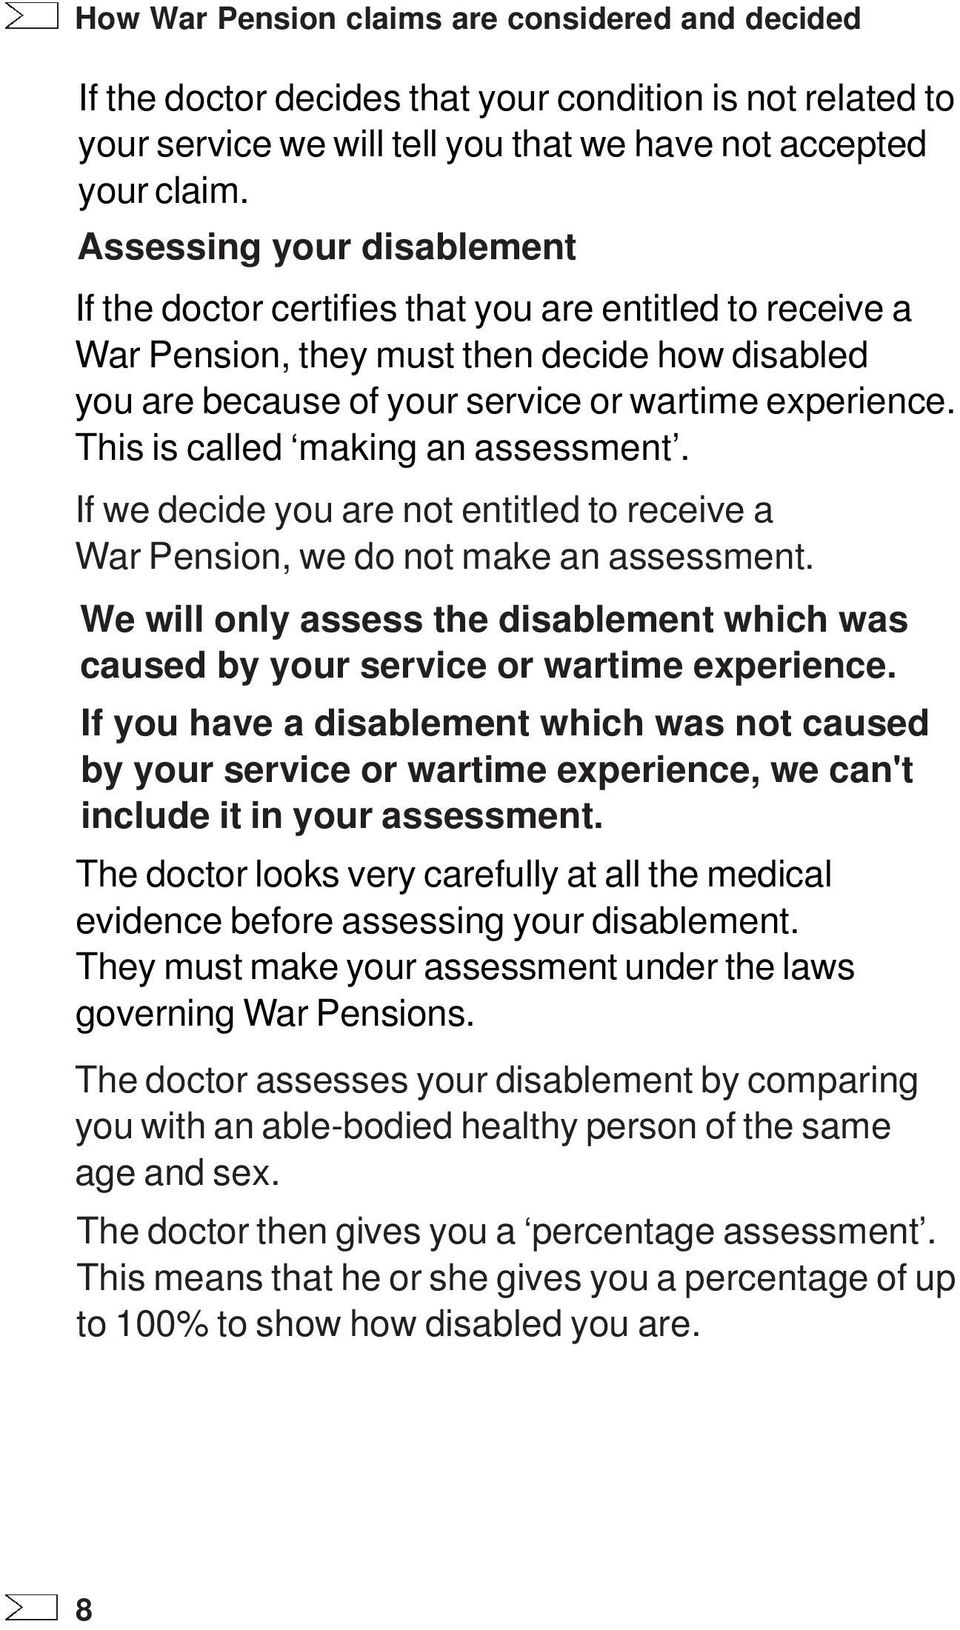 This is called making an assessment. If we decide you are not entitled to receive a War Pension, we do not make an assessment.